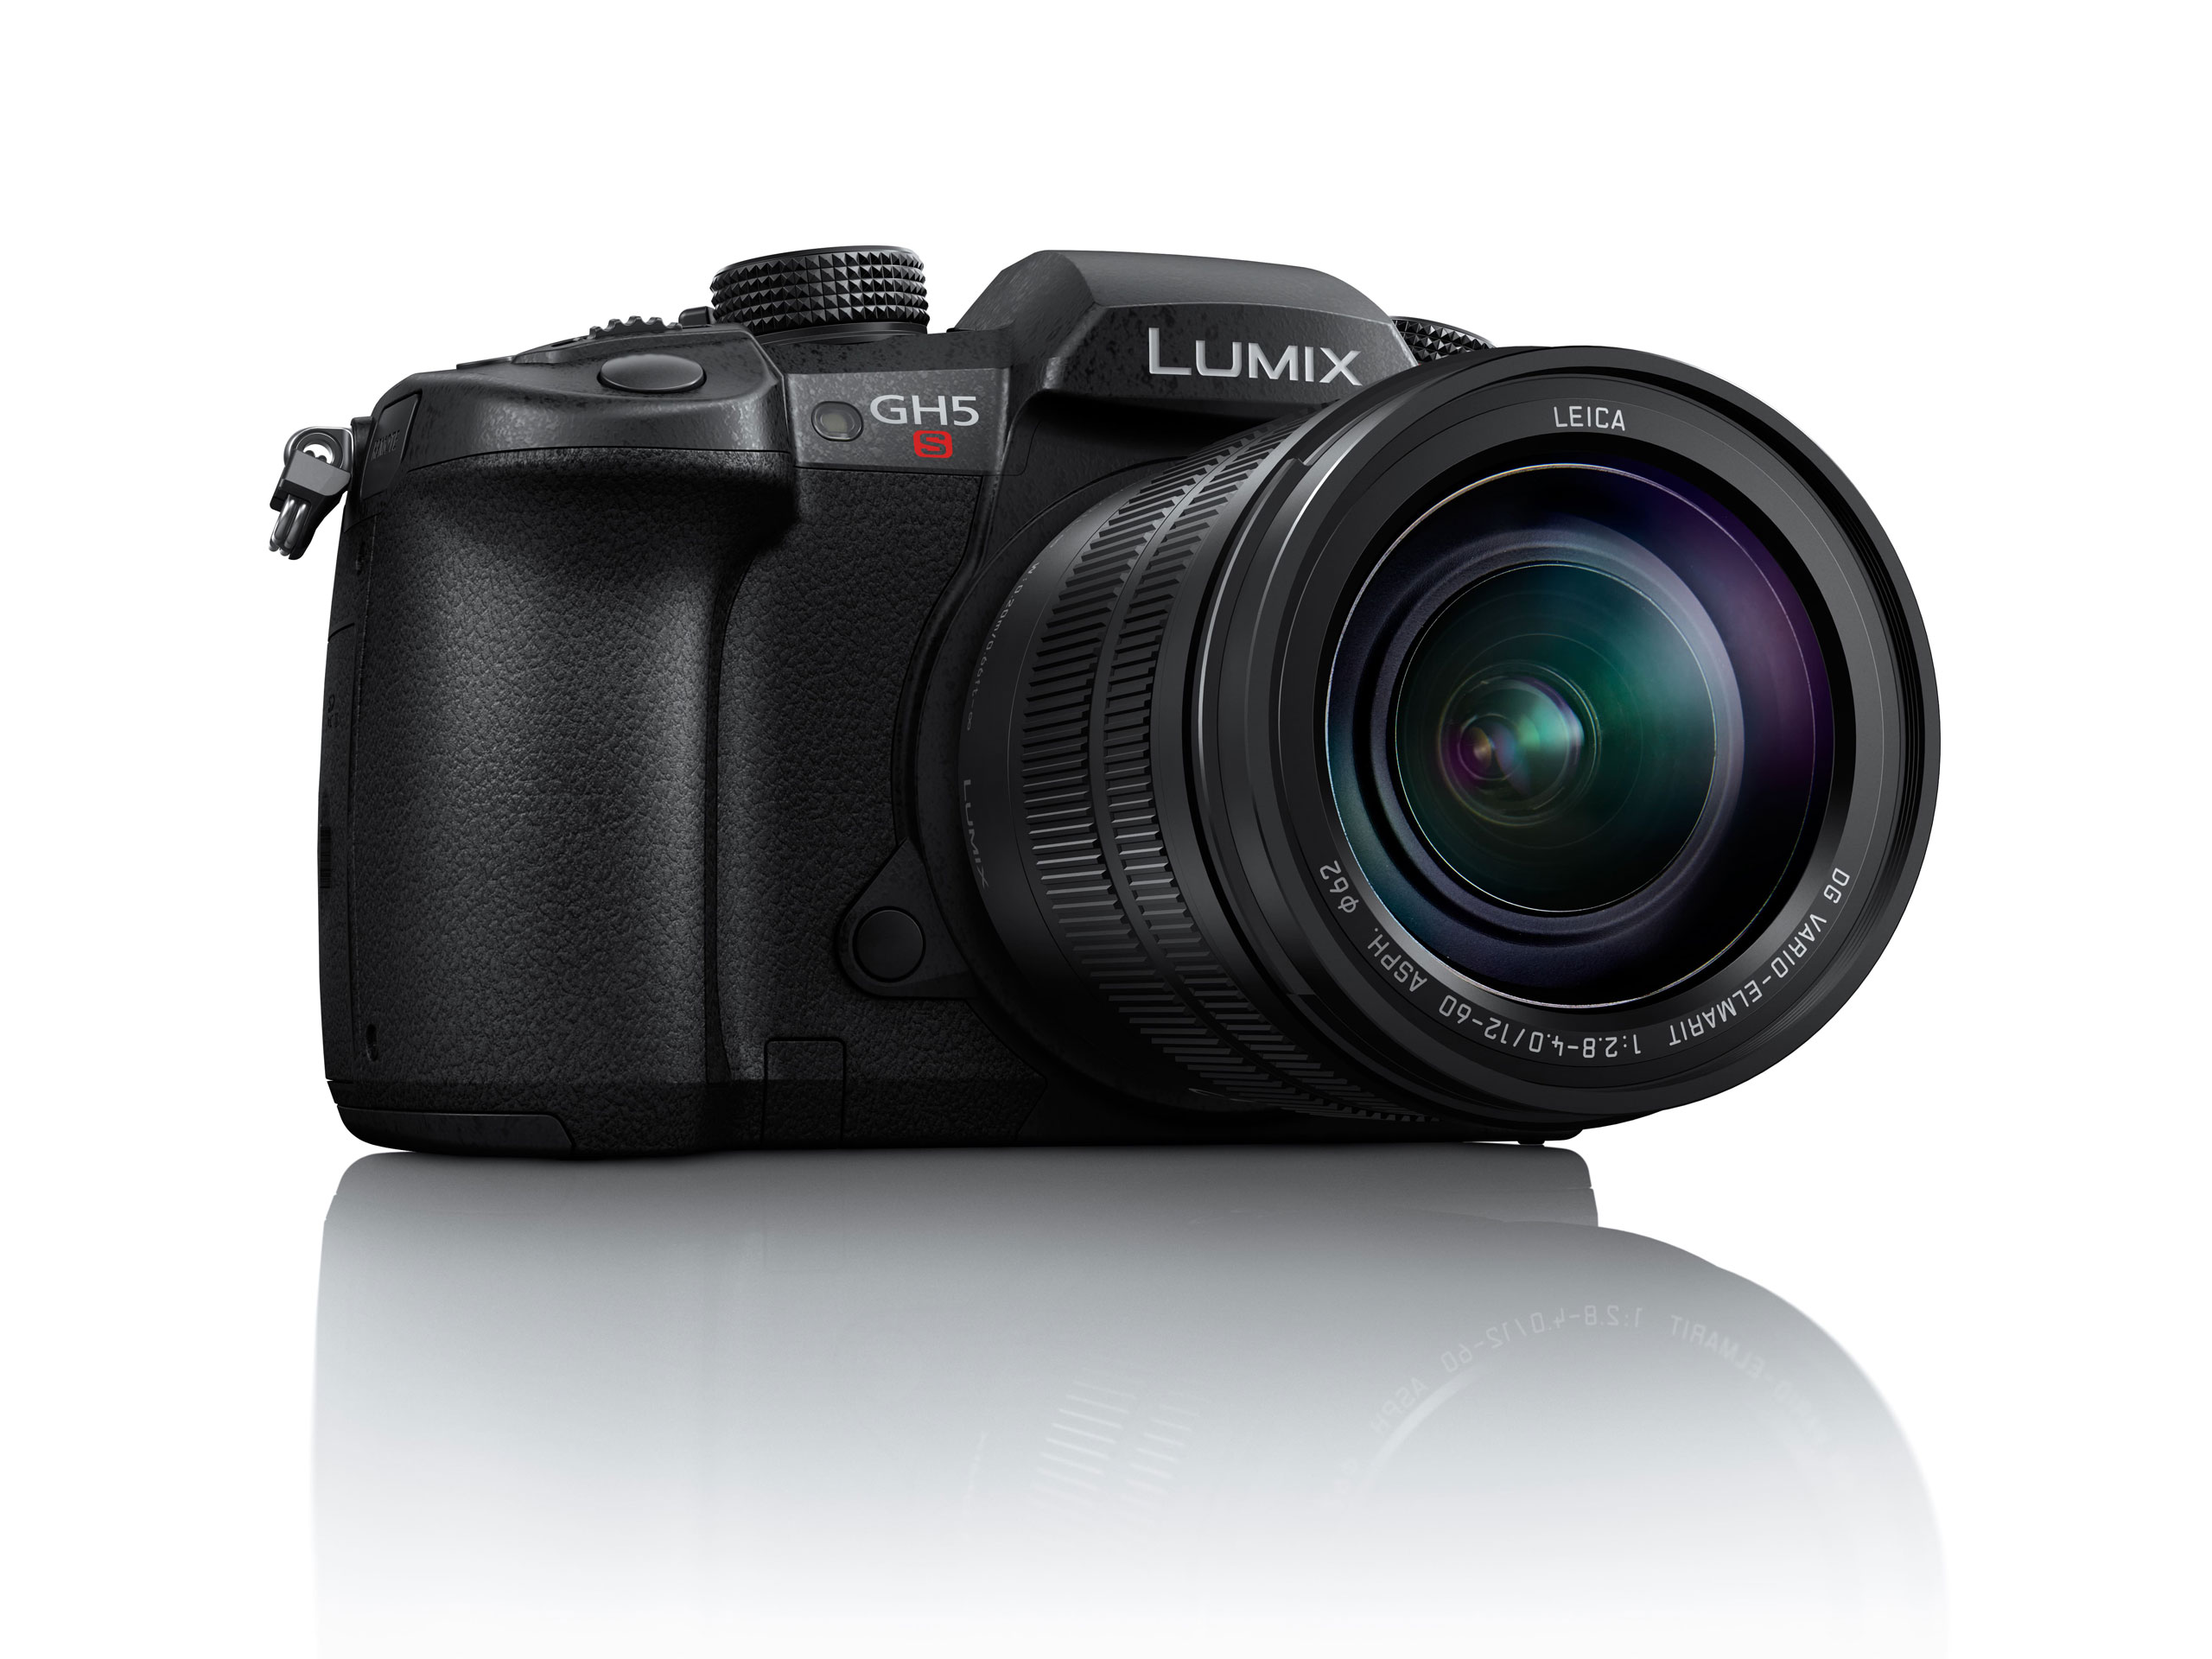 lumix, gh5s, panasonic, video, lumix gh5s